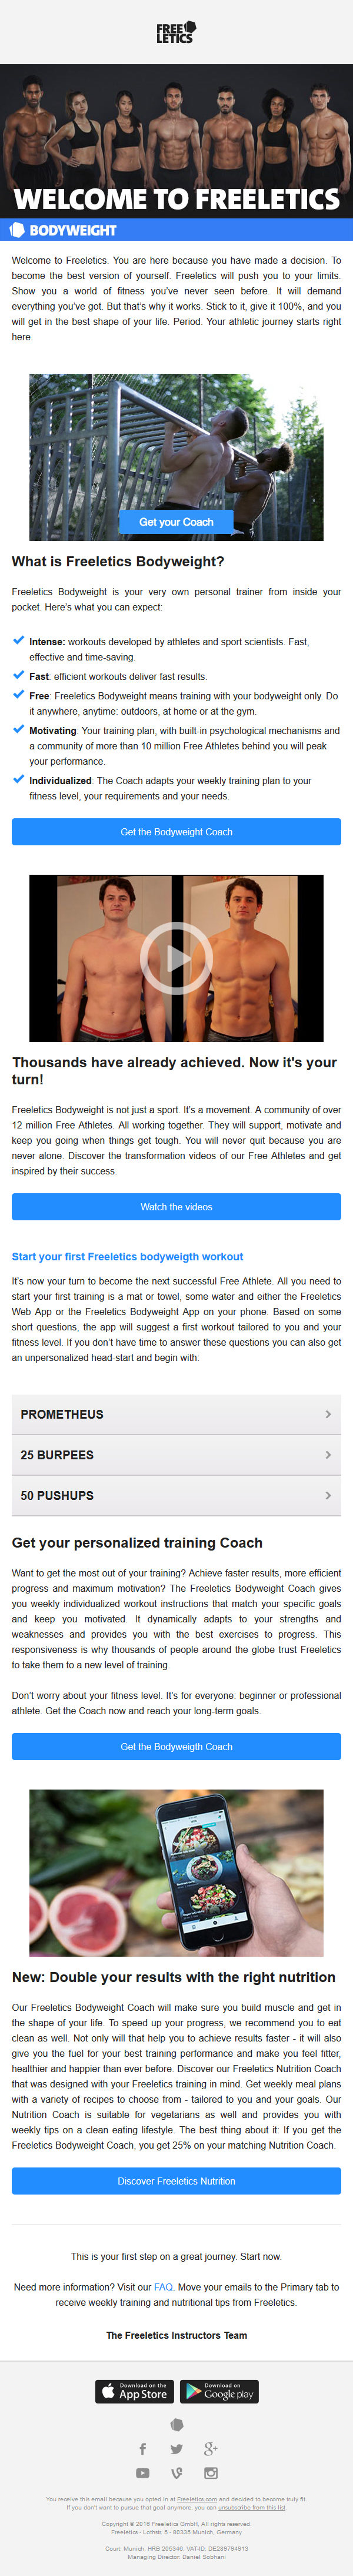 Welcome to Freeletics!